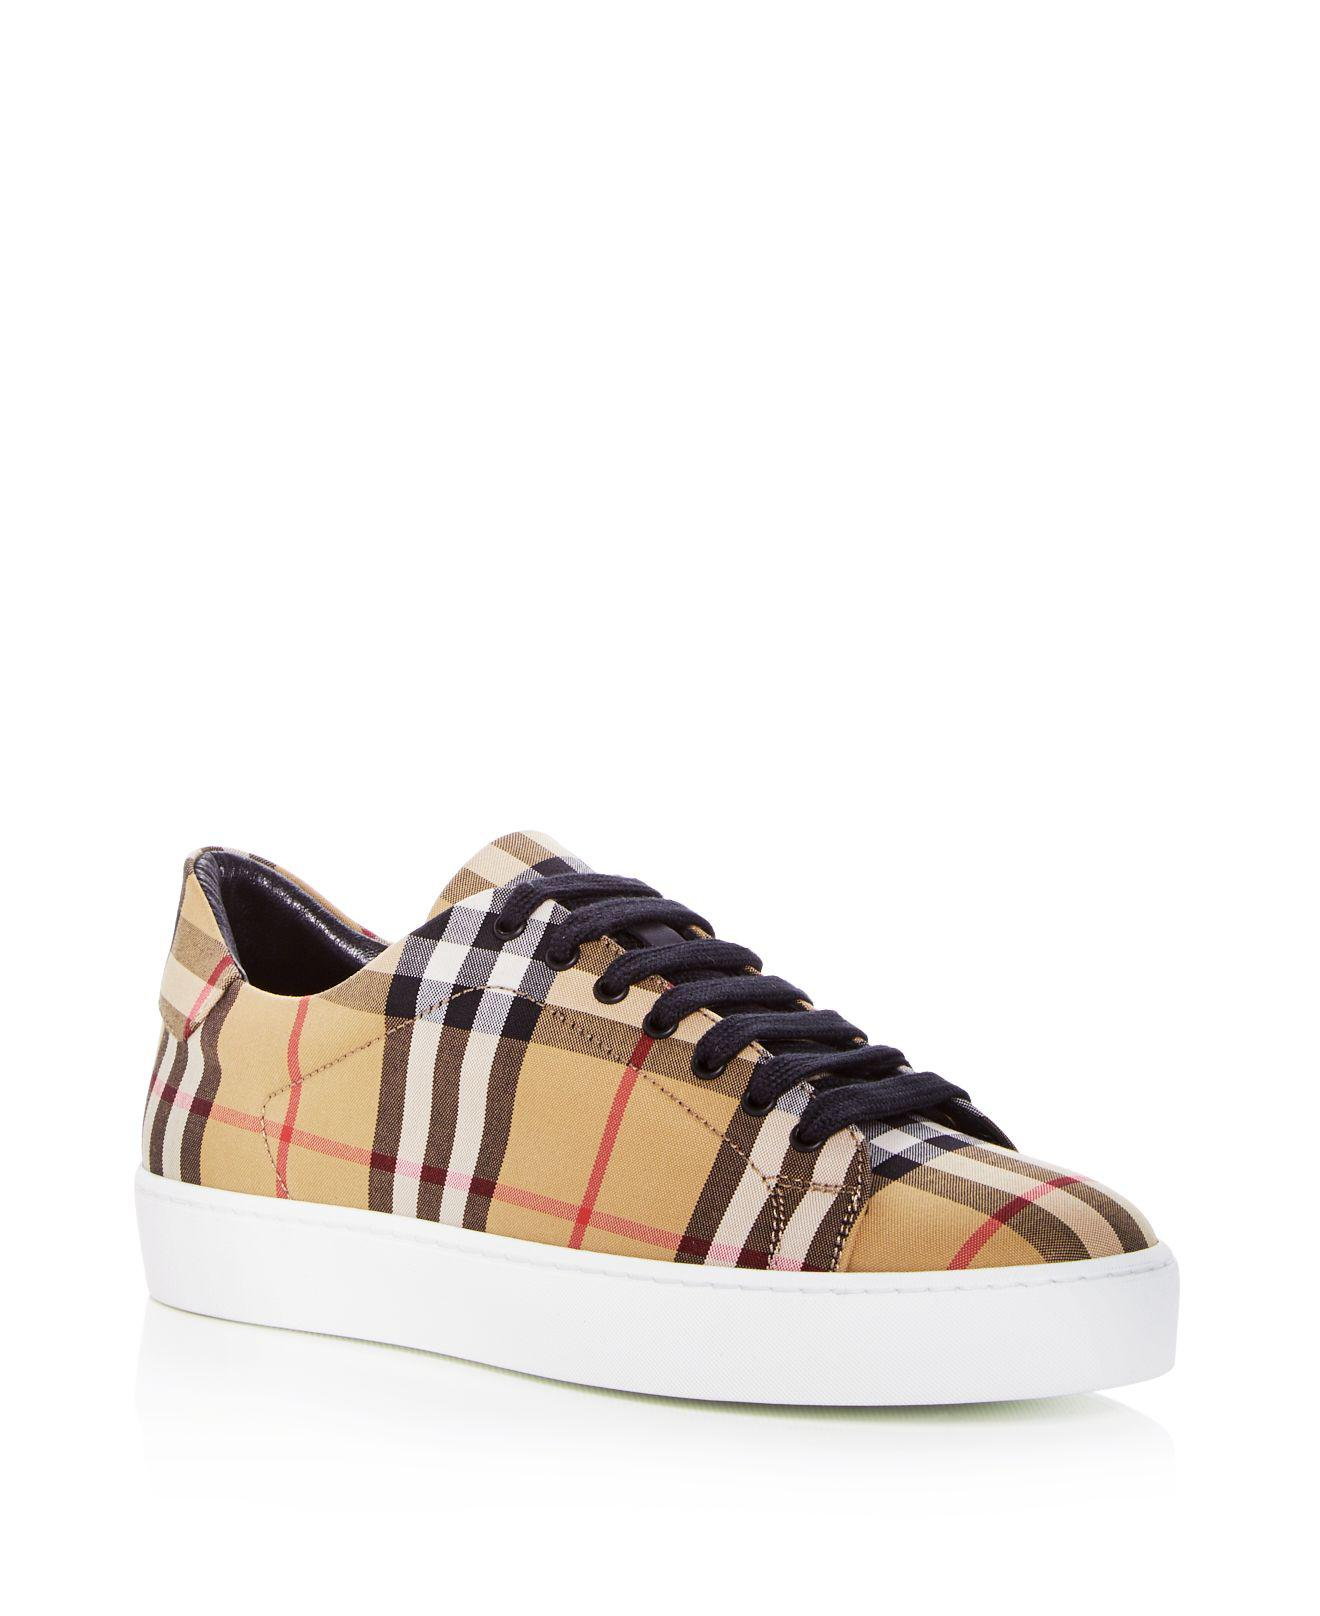 Westford Check Sneakers in Antique Yellow Cotton Tweed and Leather Burberry tmwLQw